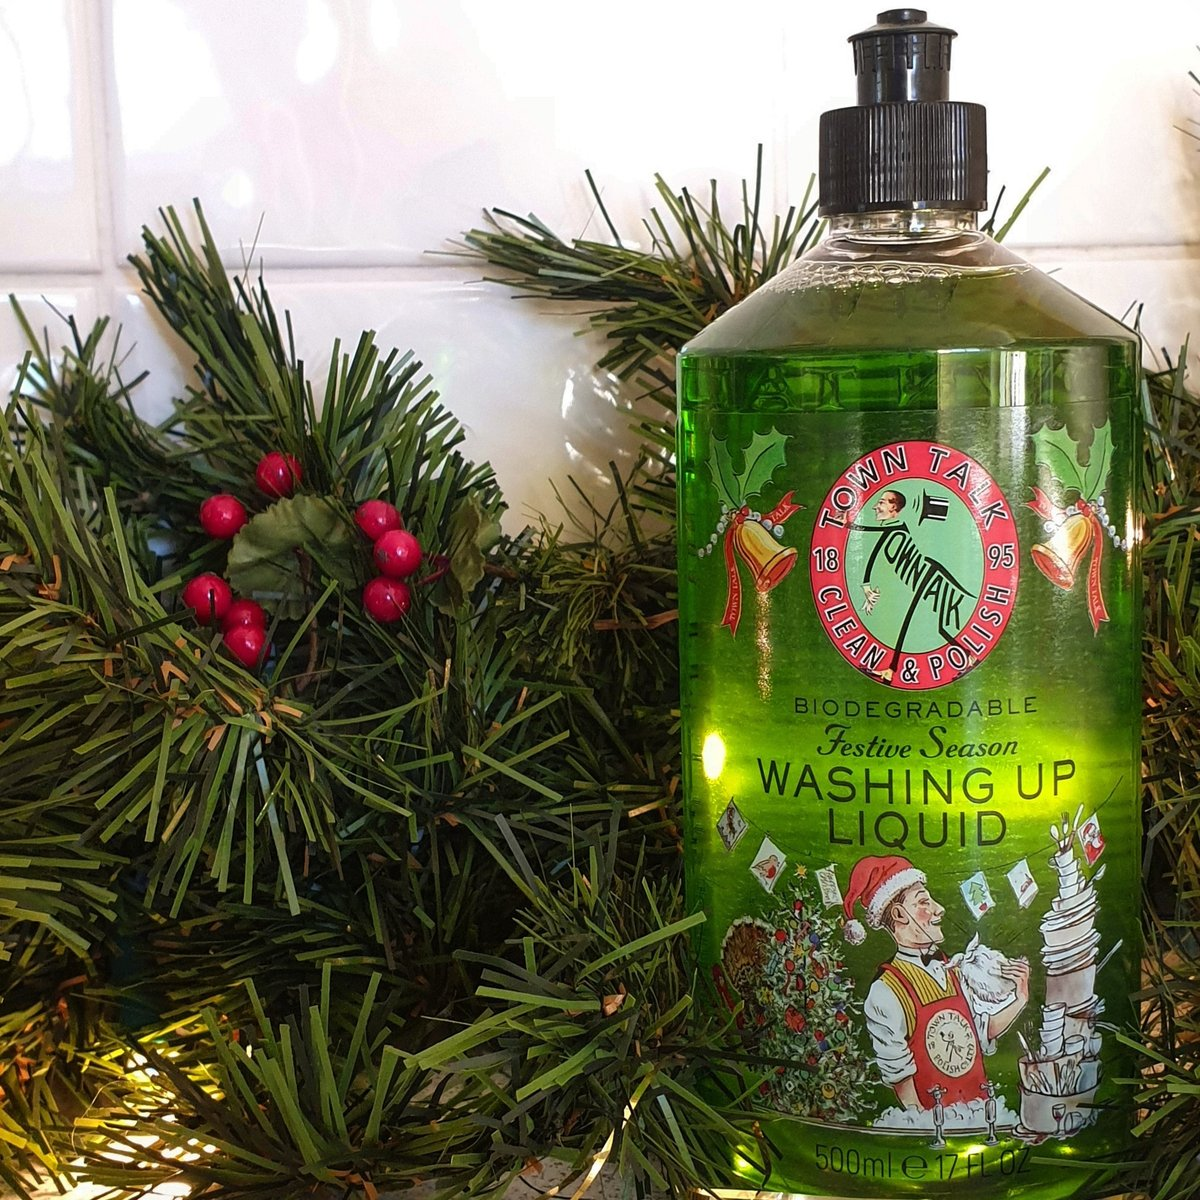 This festive season washing-up liquid will be sure to get everyone in the festive mood! It has a Christmas Clementines scent and will leave your dishes sparkling, so you'll be free to enjoy the celebrations! #Christmas #CleaningProducts #CleaningFanatic #GiftIdeaspic.twitter.com/fOGRRagmIB